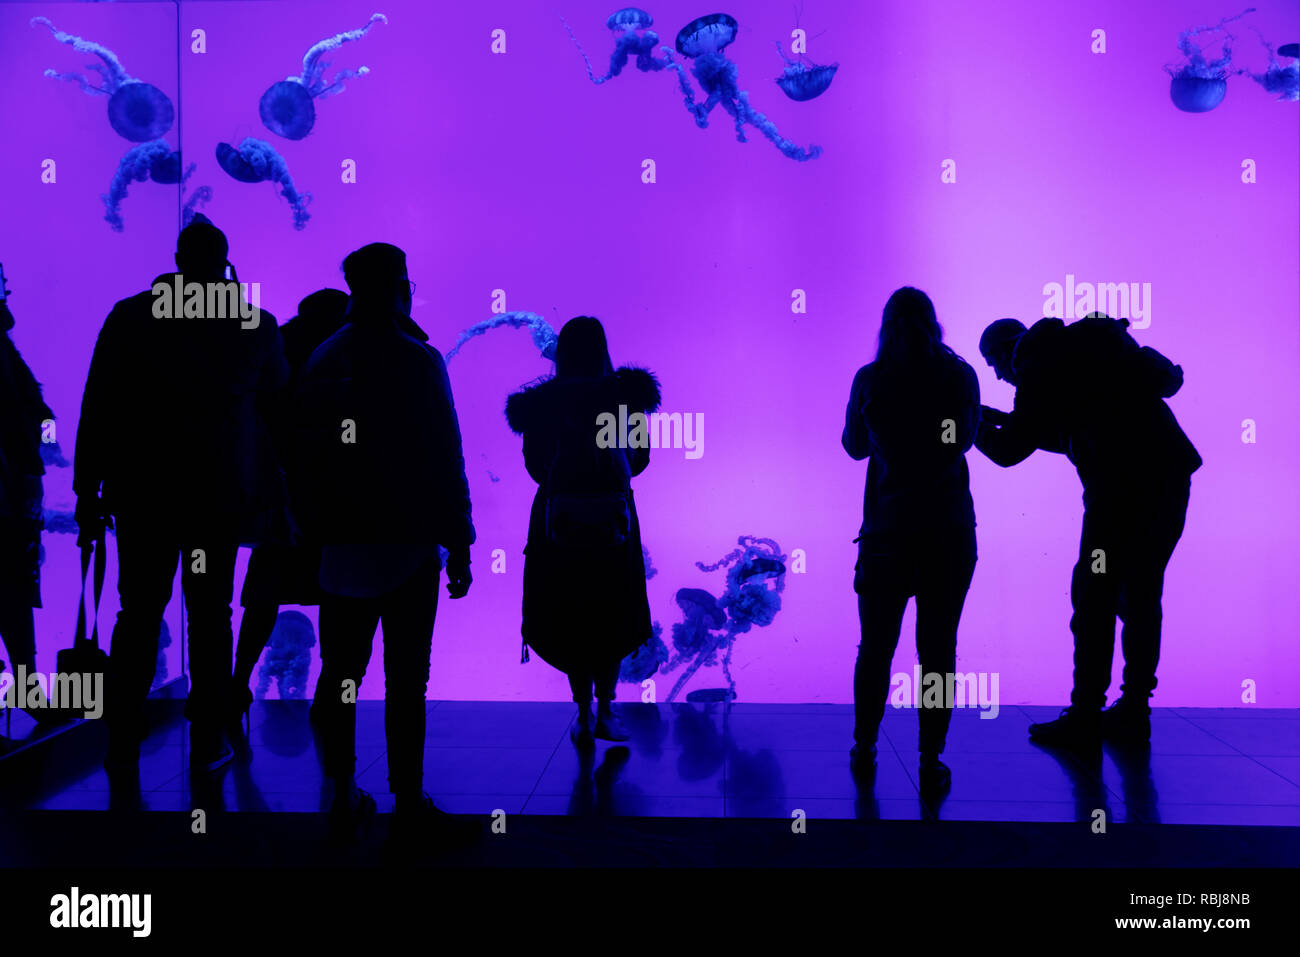 People silhouetted against the jellyfish tank inside Ripley's Aquarium of Canada, Toronto, Ontario - Stock Image